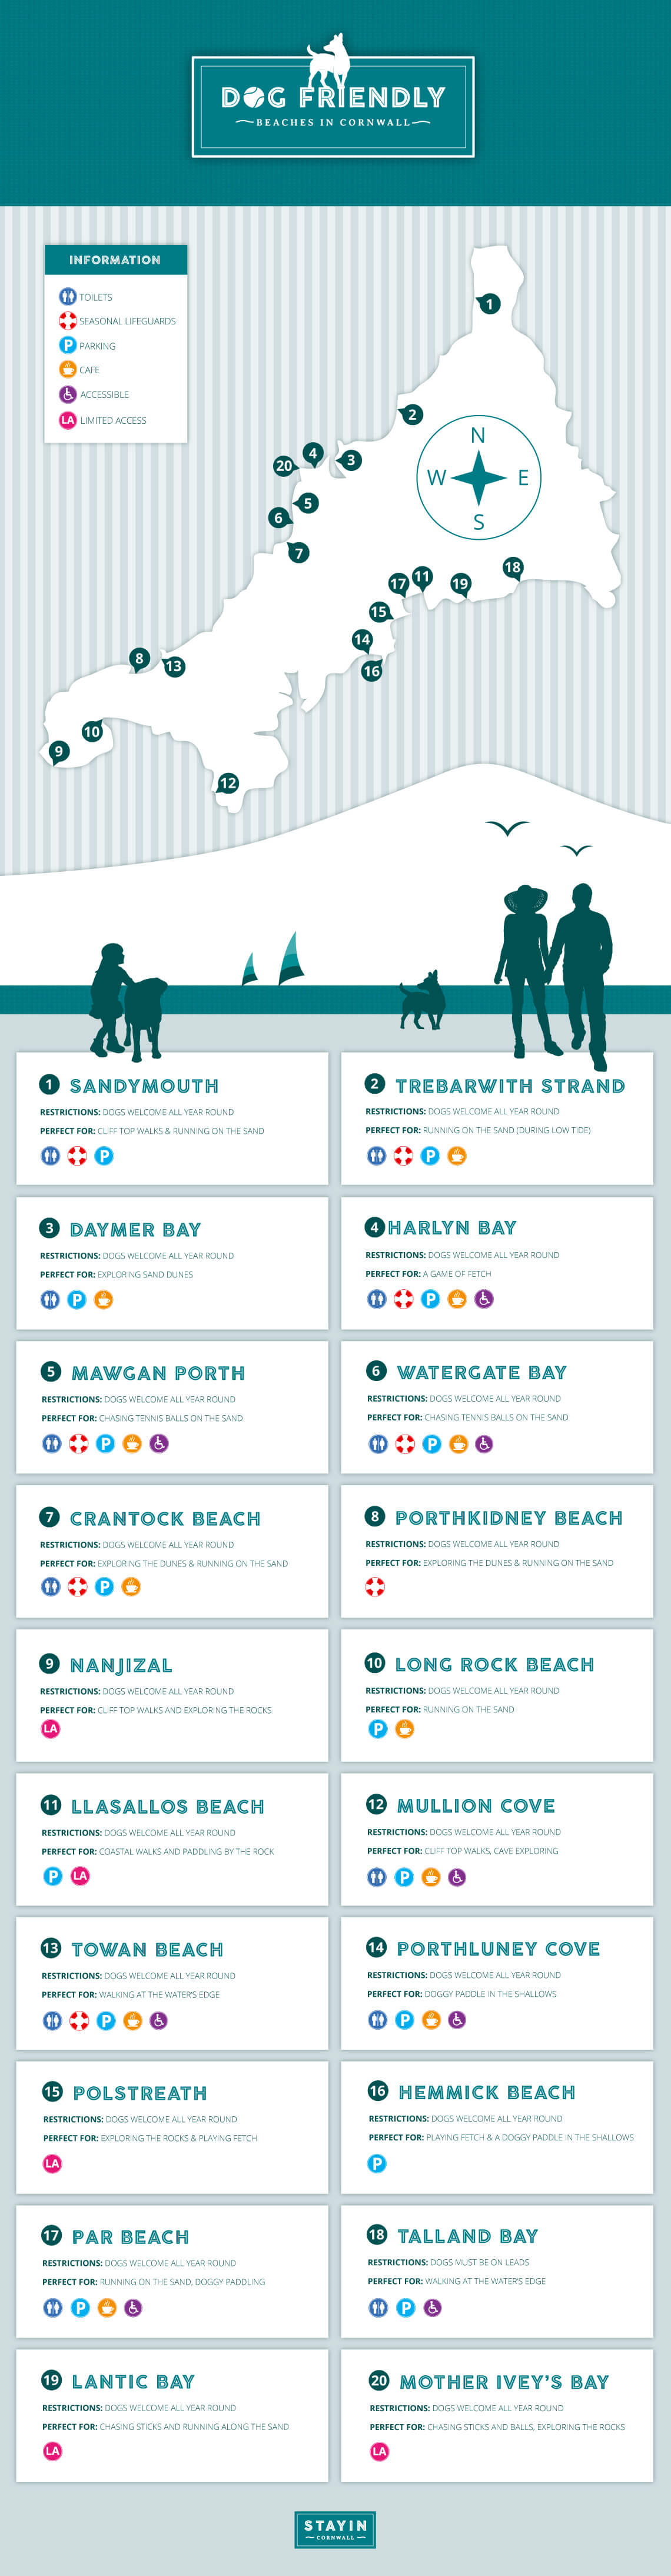 Dog-friendly beaches in Cornwall infographic